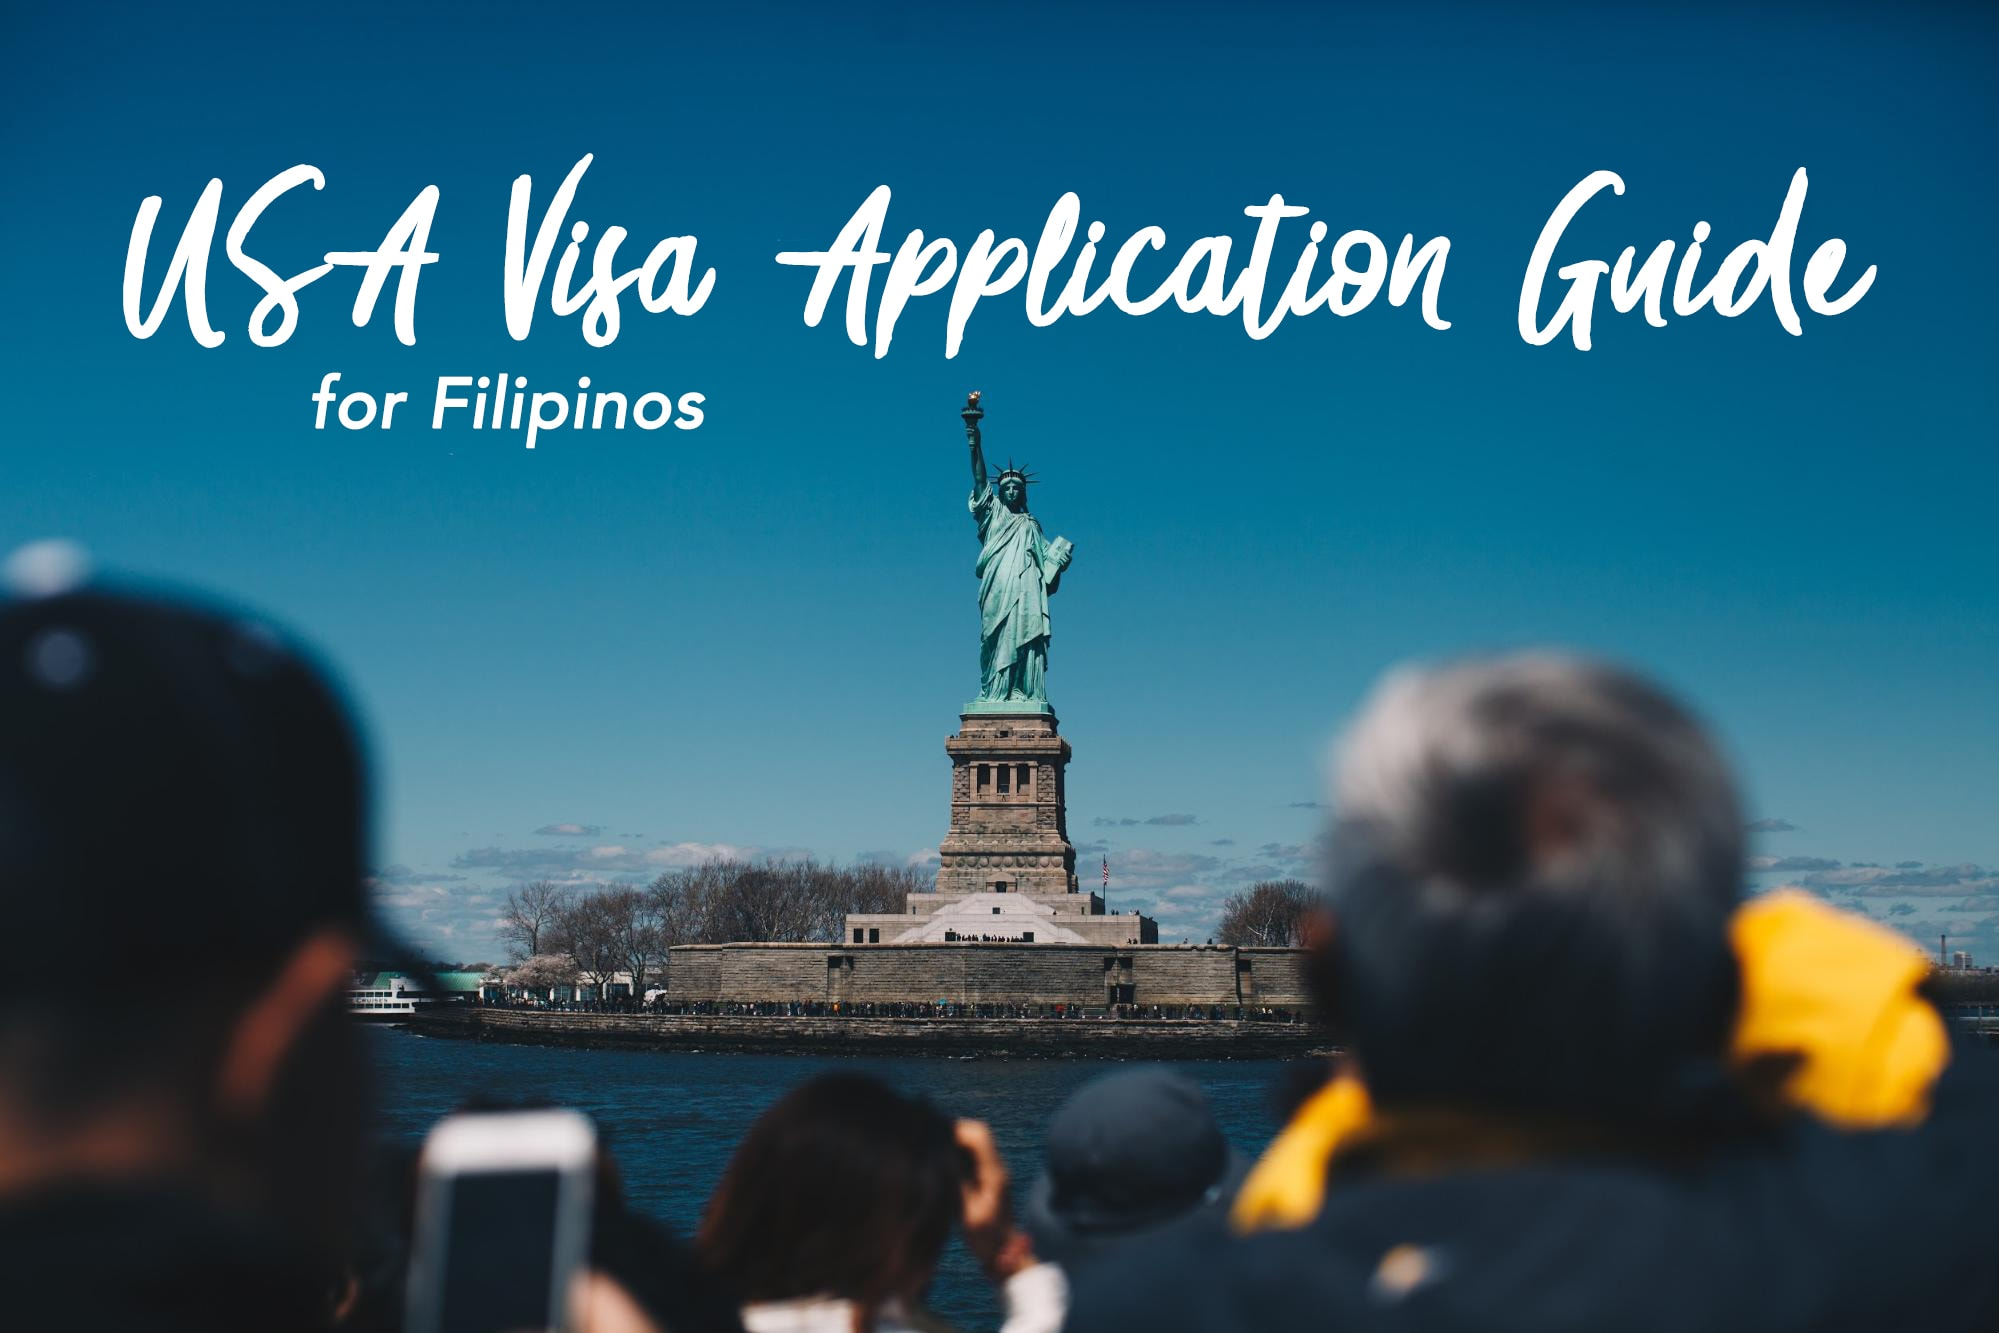 UPDATED: A Step-By-Step Guide To Applying For A USA Visa For